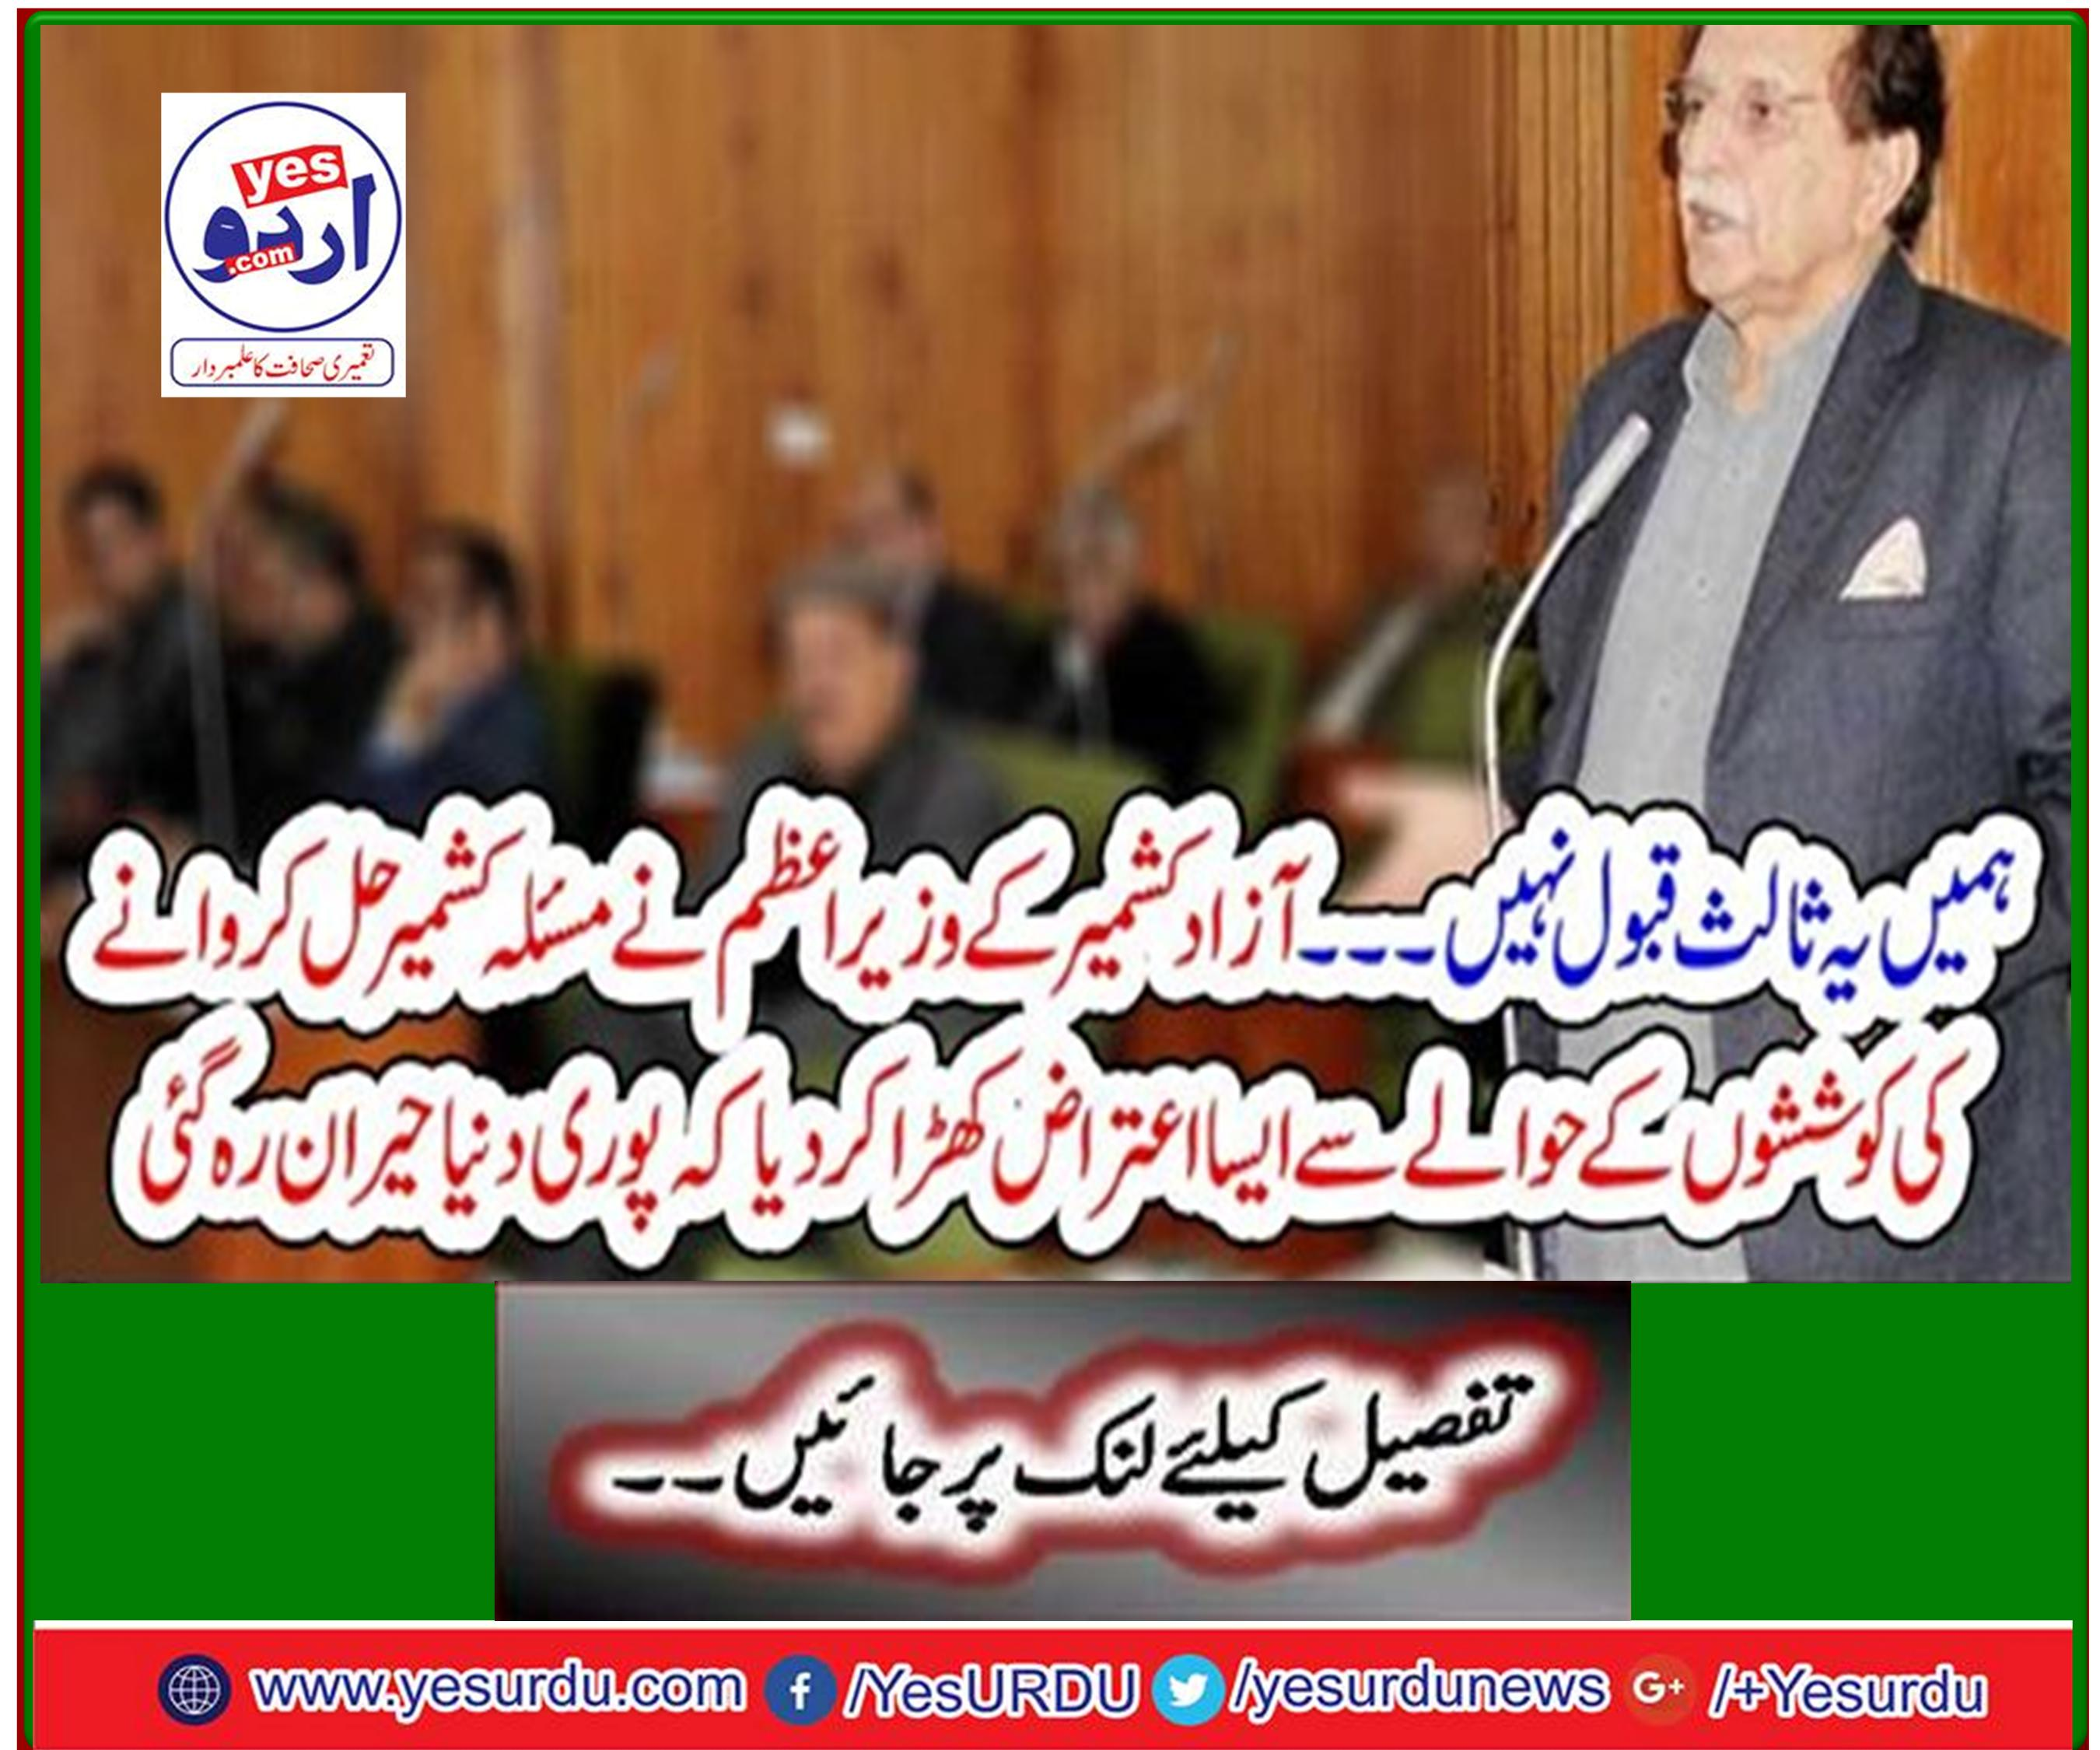 The Prime Minister of Azad Kashmir has raised an objection to the efforts of Kashmir to solve the problem that the whole world is shocked.